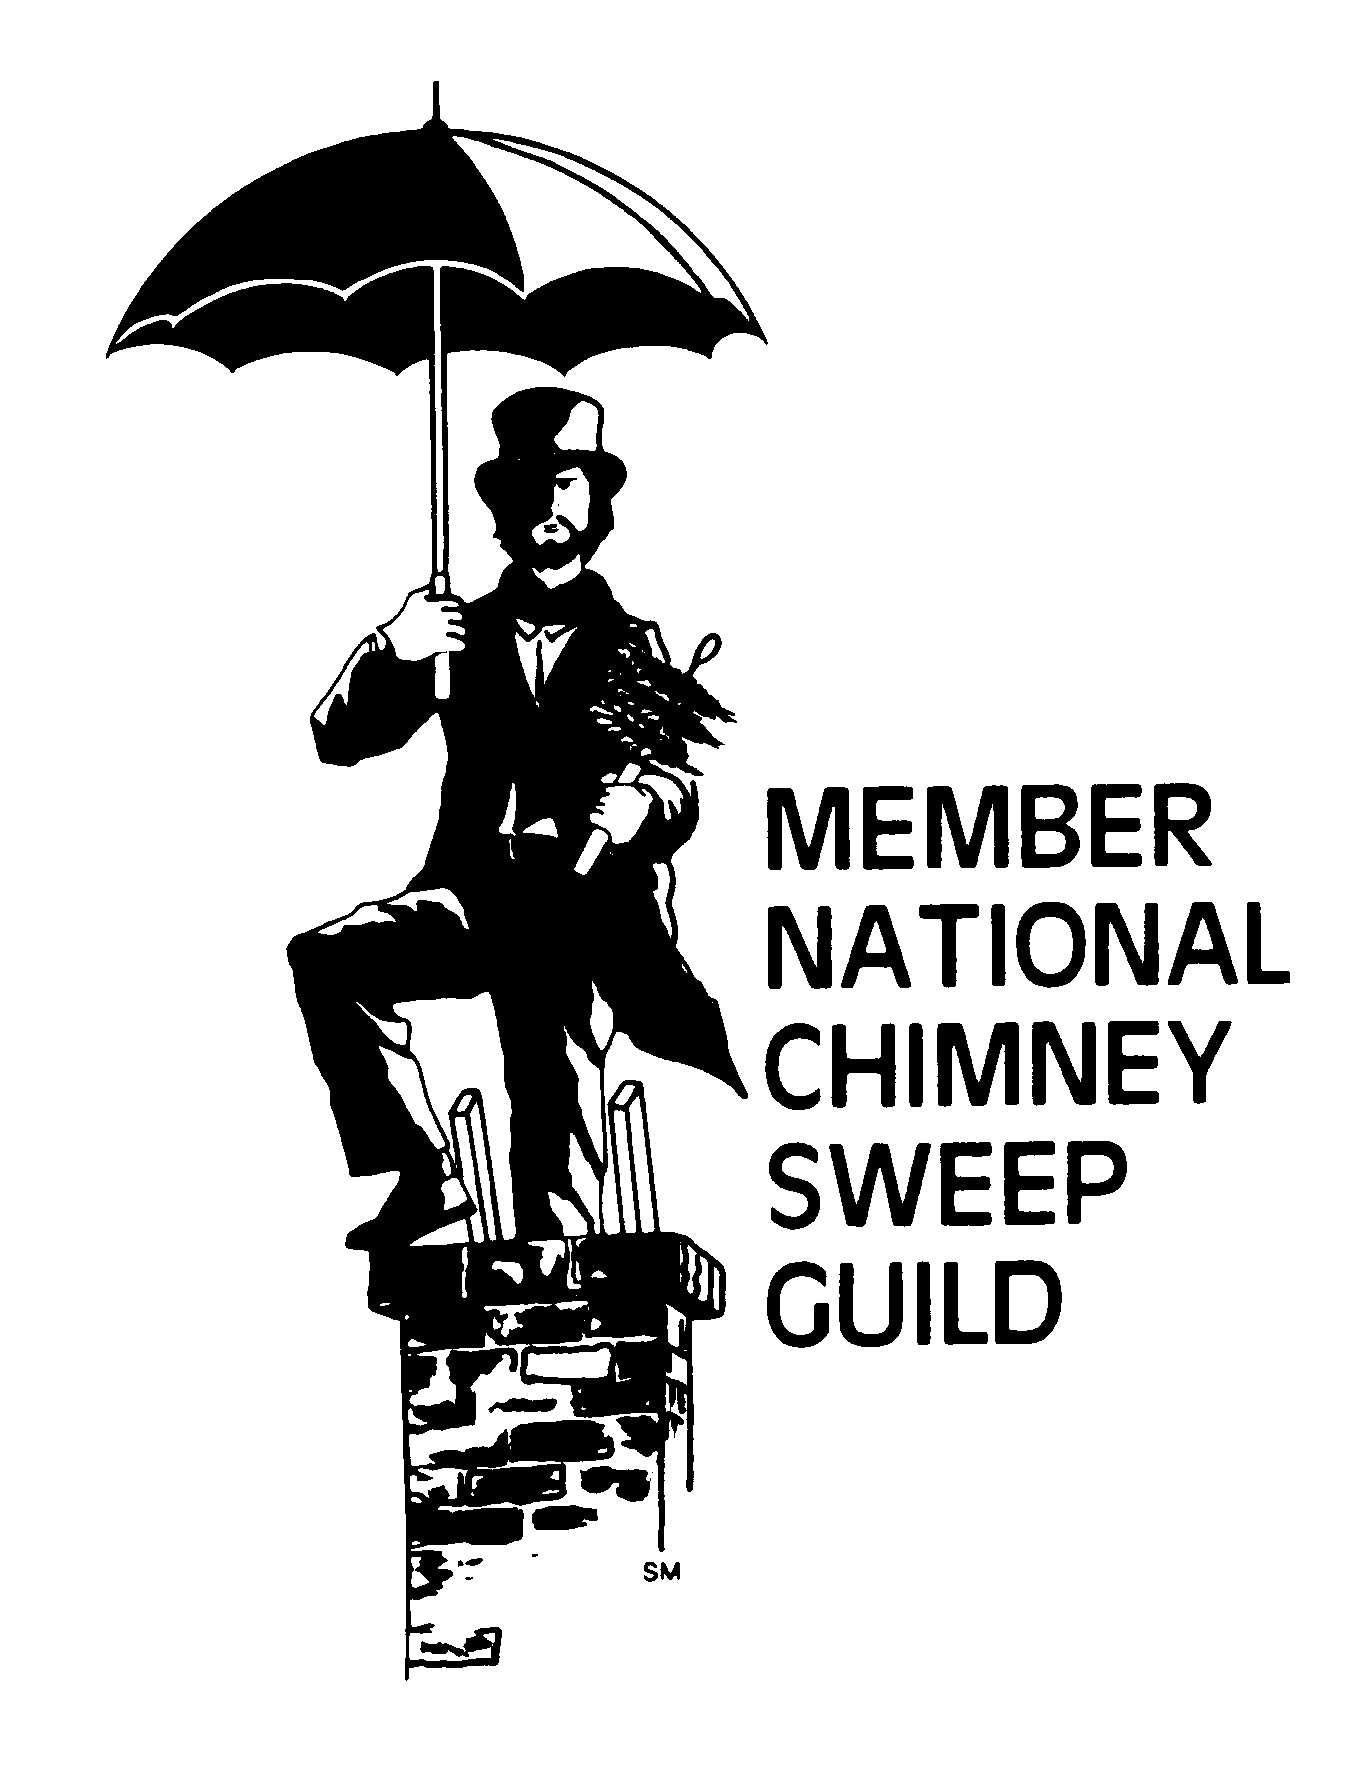 NCSG (National Chimney Sweep Guild)